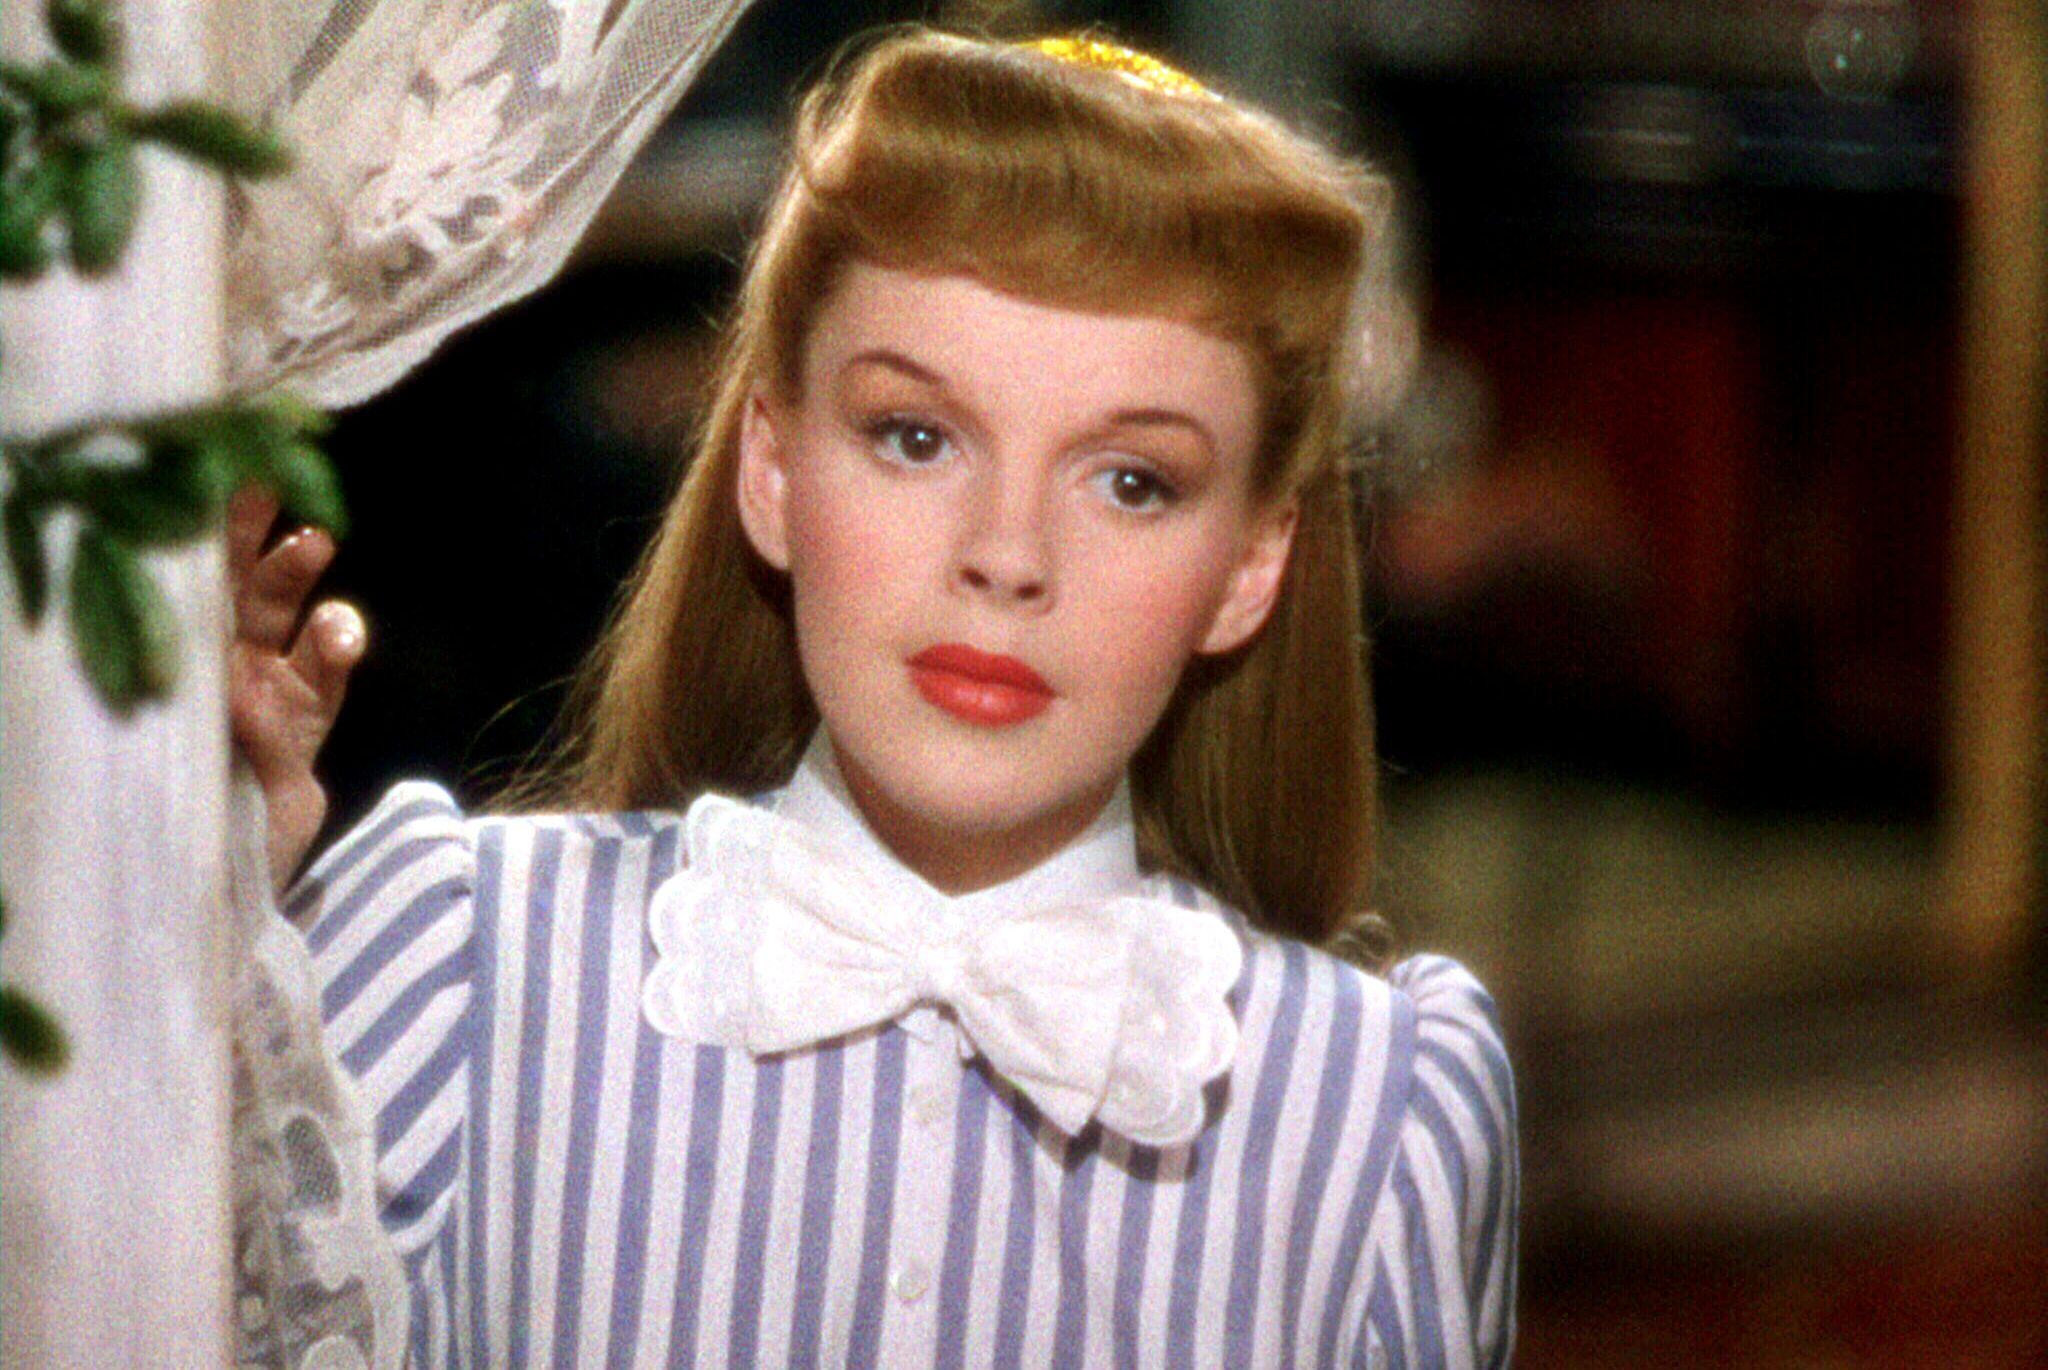 Watch Now The nostalgic musical Meet Me in St. Louis might contain Judy Garland's best screen performance. She stars as Esther Smith, one of four sisters reluctant to uproot their Midwestern lives and move to New York.